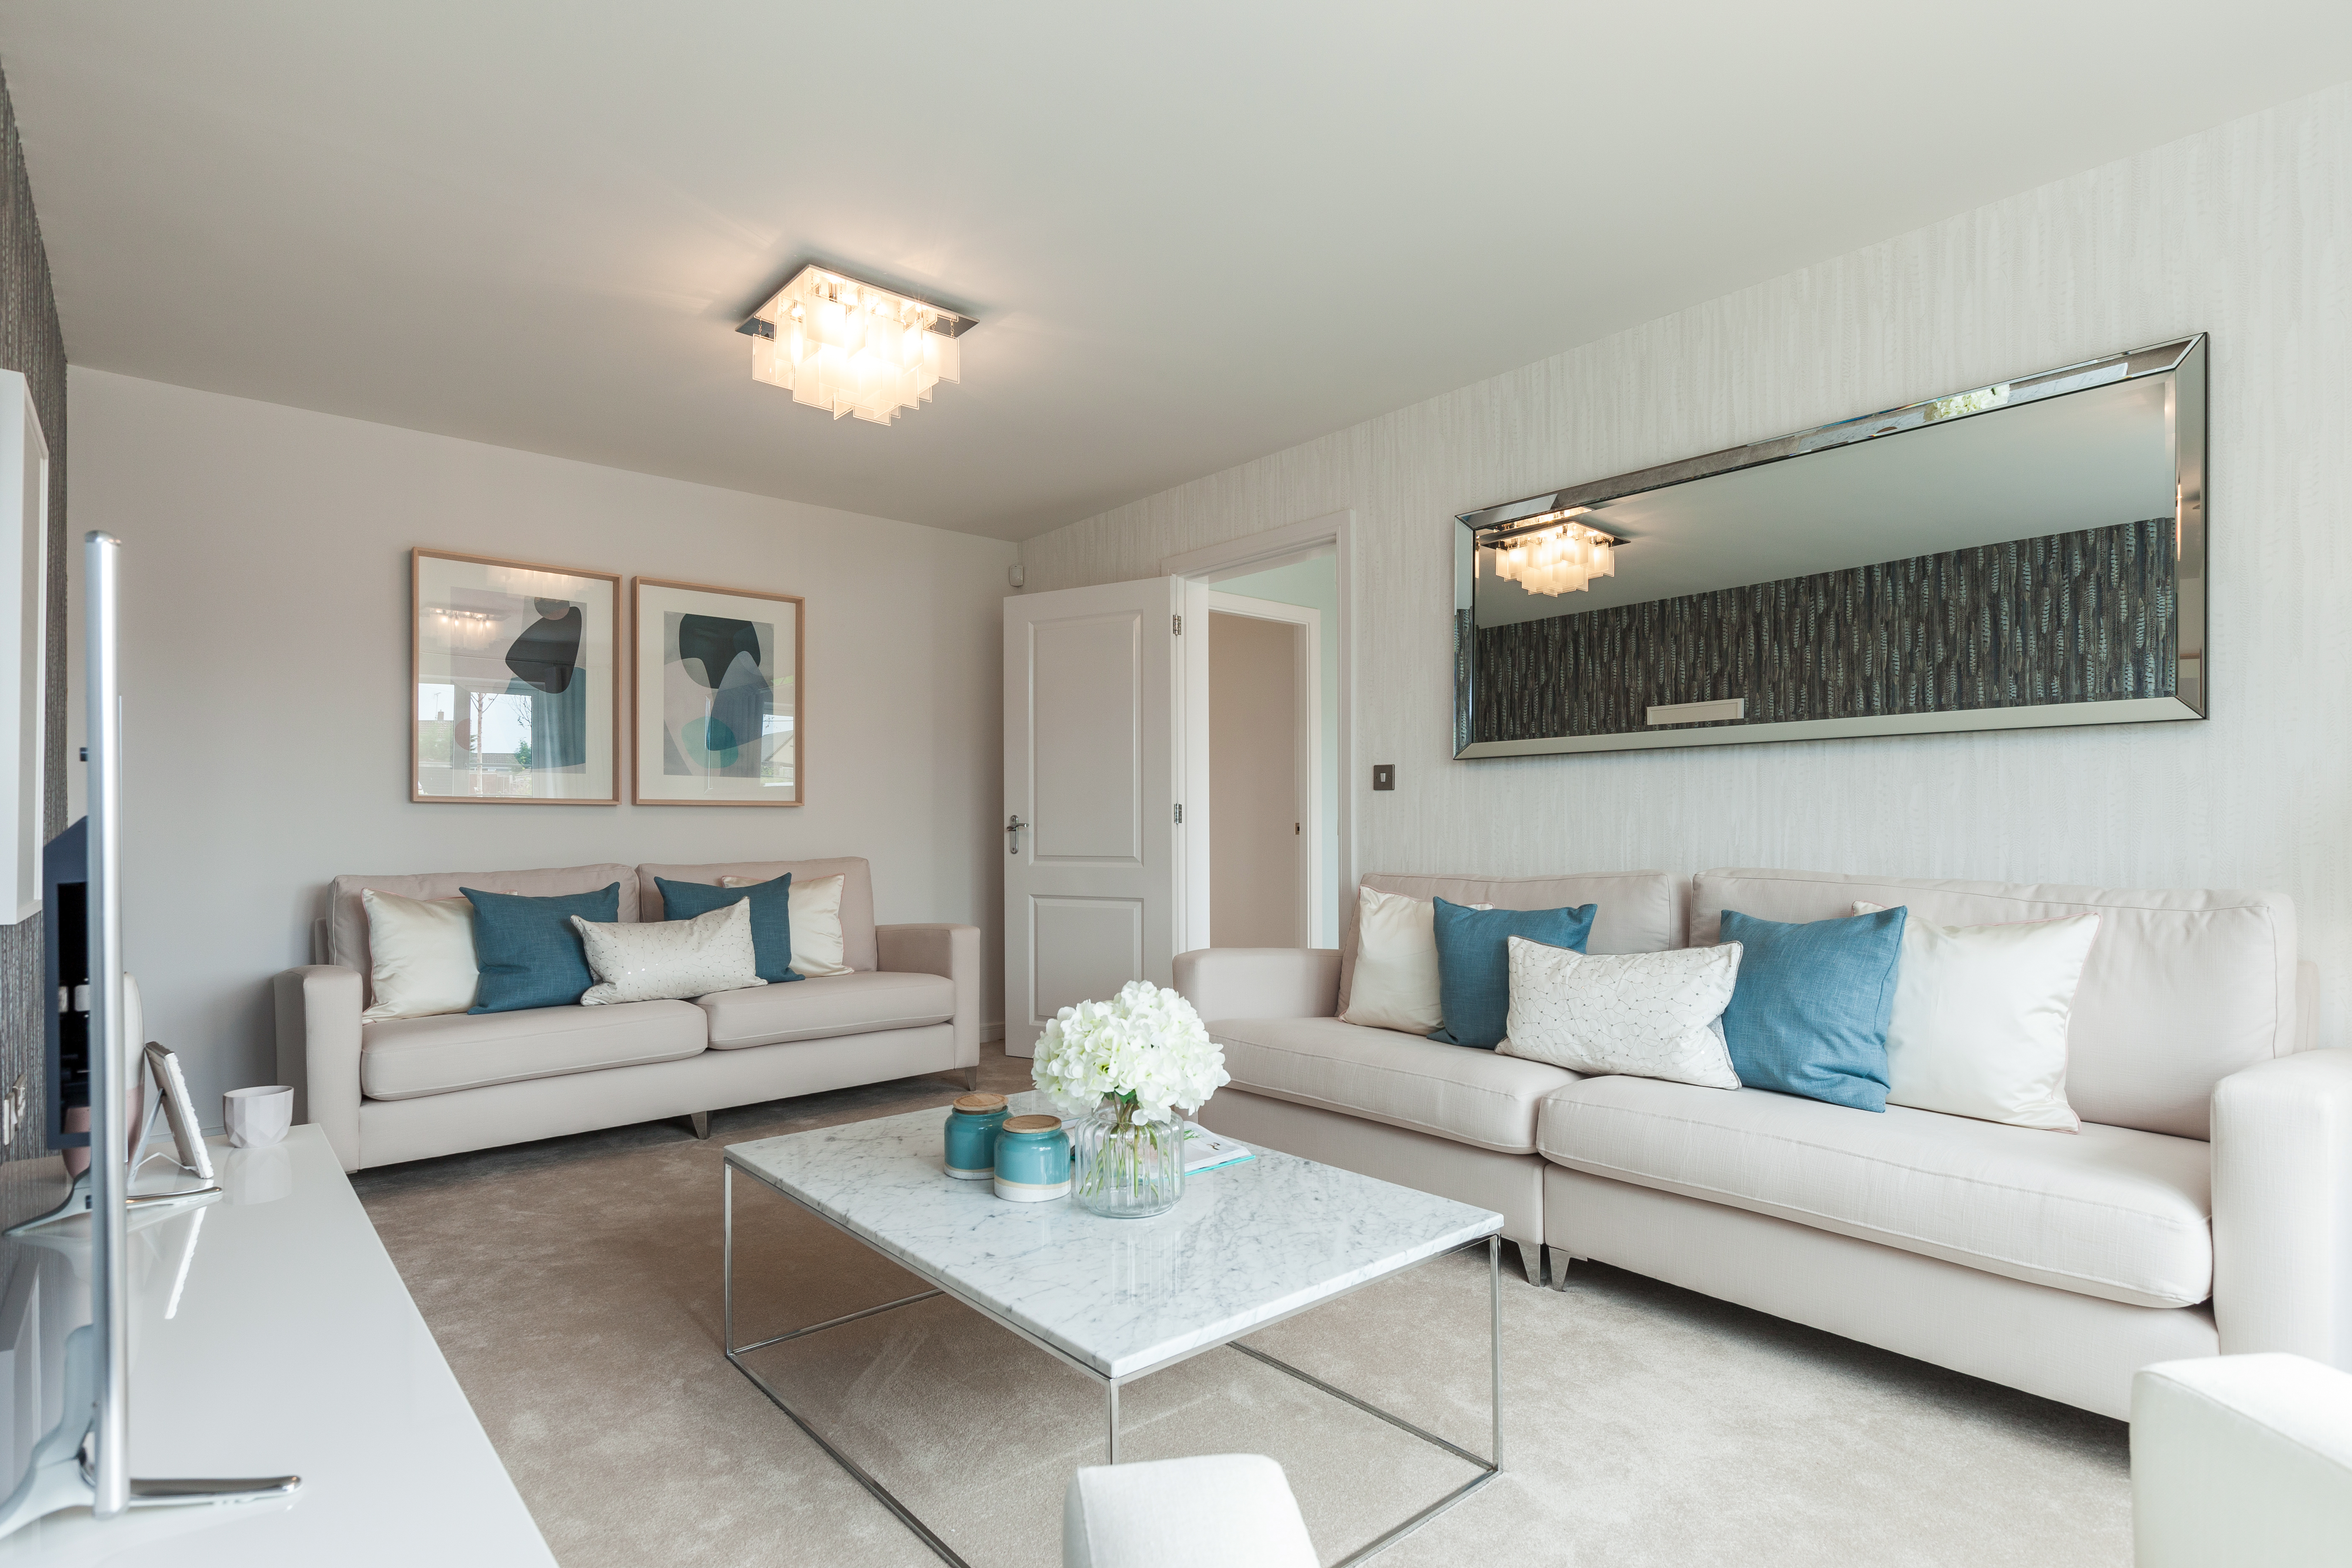 Superior The 3 And 4 Bedroom Properties Are Offered In A Variety Of Styles,  Appealing To First Time Buyers, Families And Commuters Around The Region.